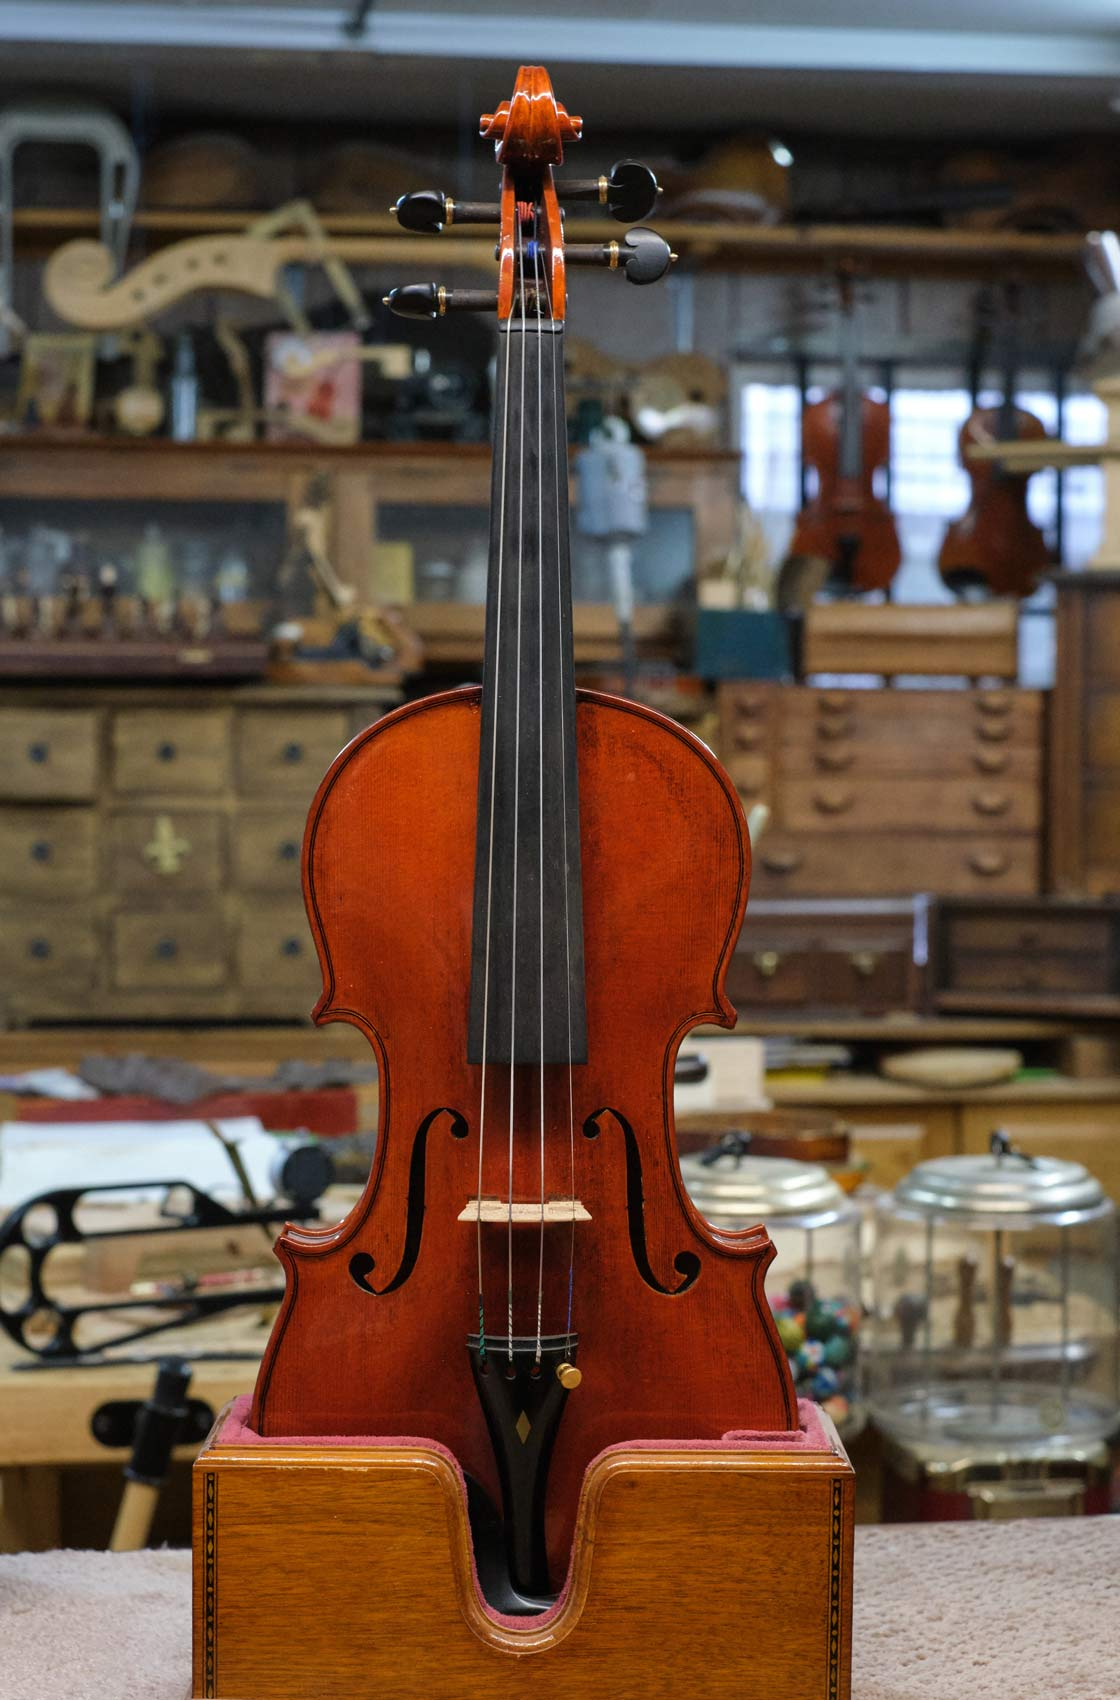 Custom Violin Built by Cheryl Macomber